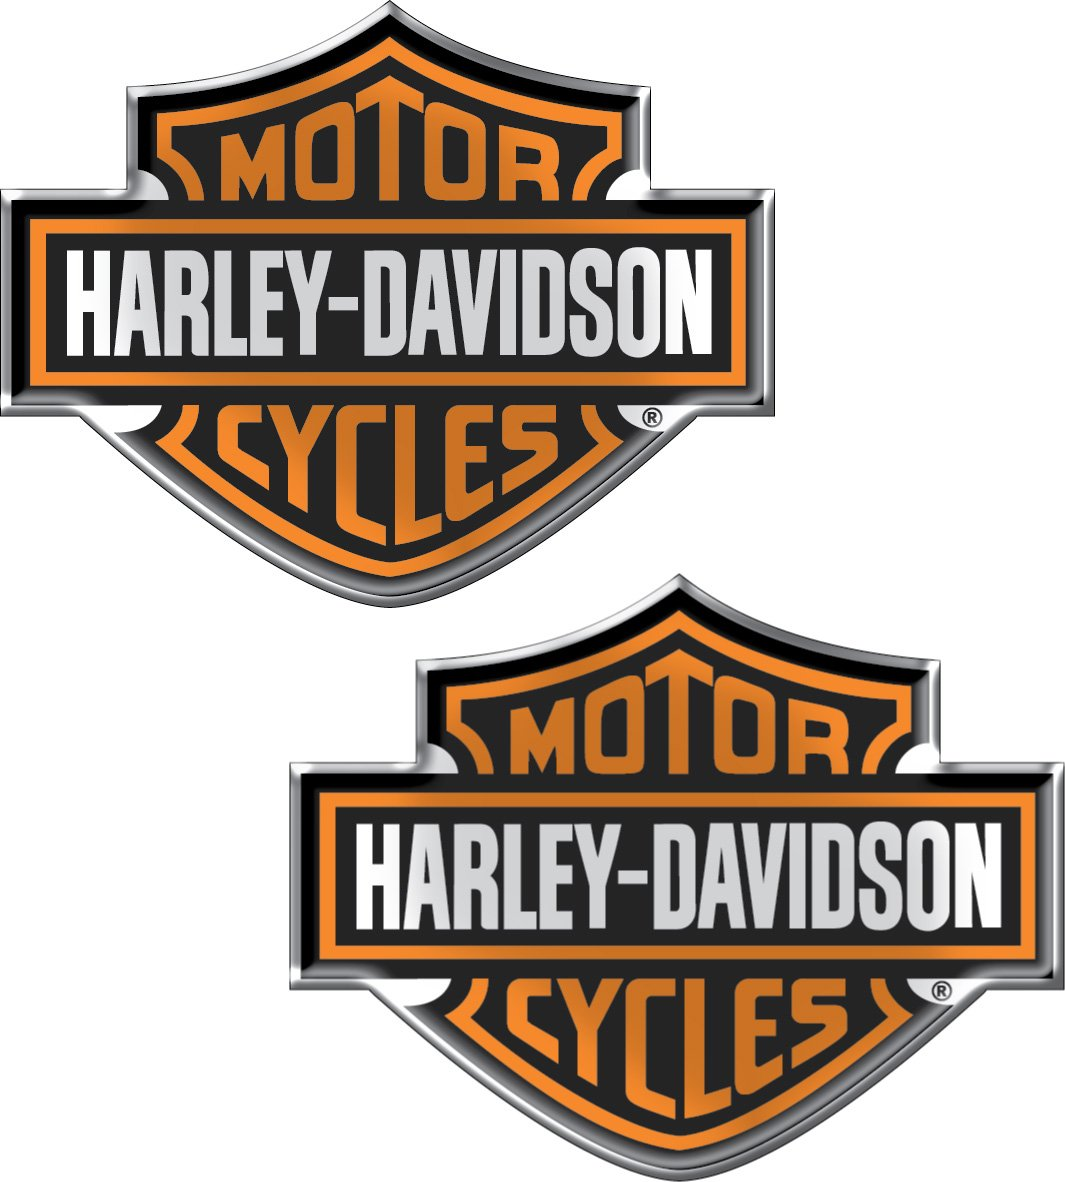 Chroma 5507 harley davidson domed emblem decal harley davidson amazon in car motorbike